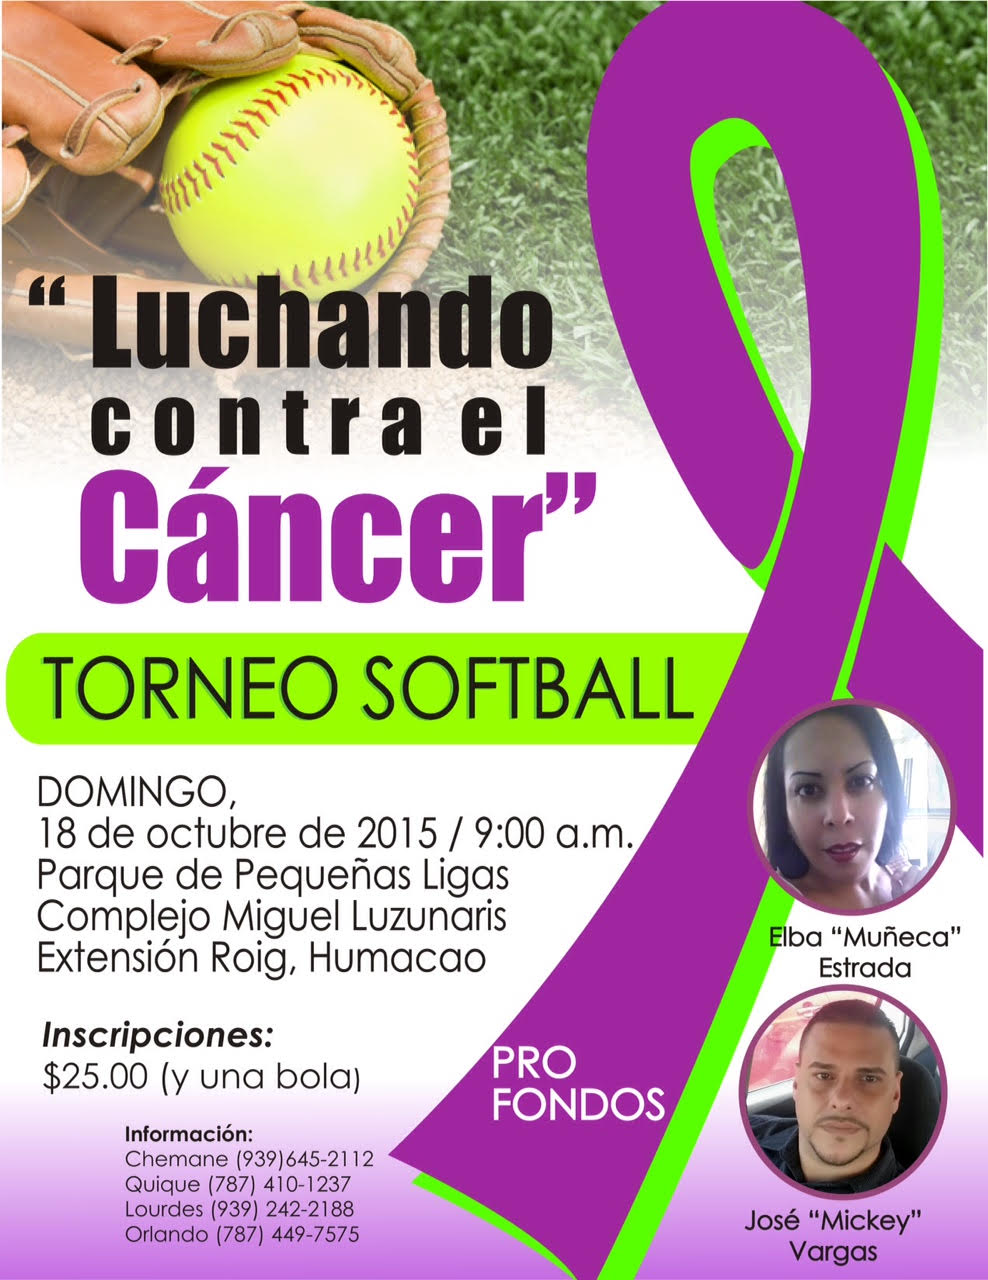 Luchando contra el cancer